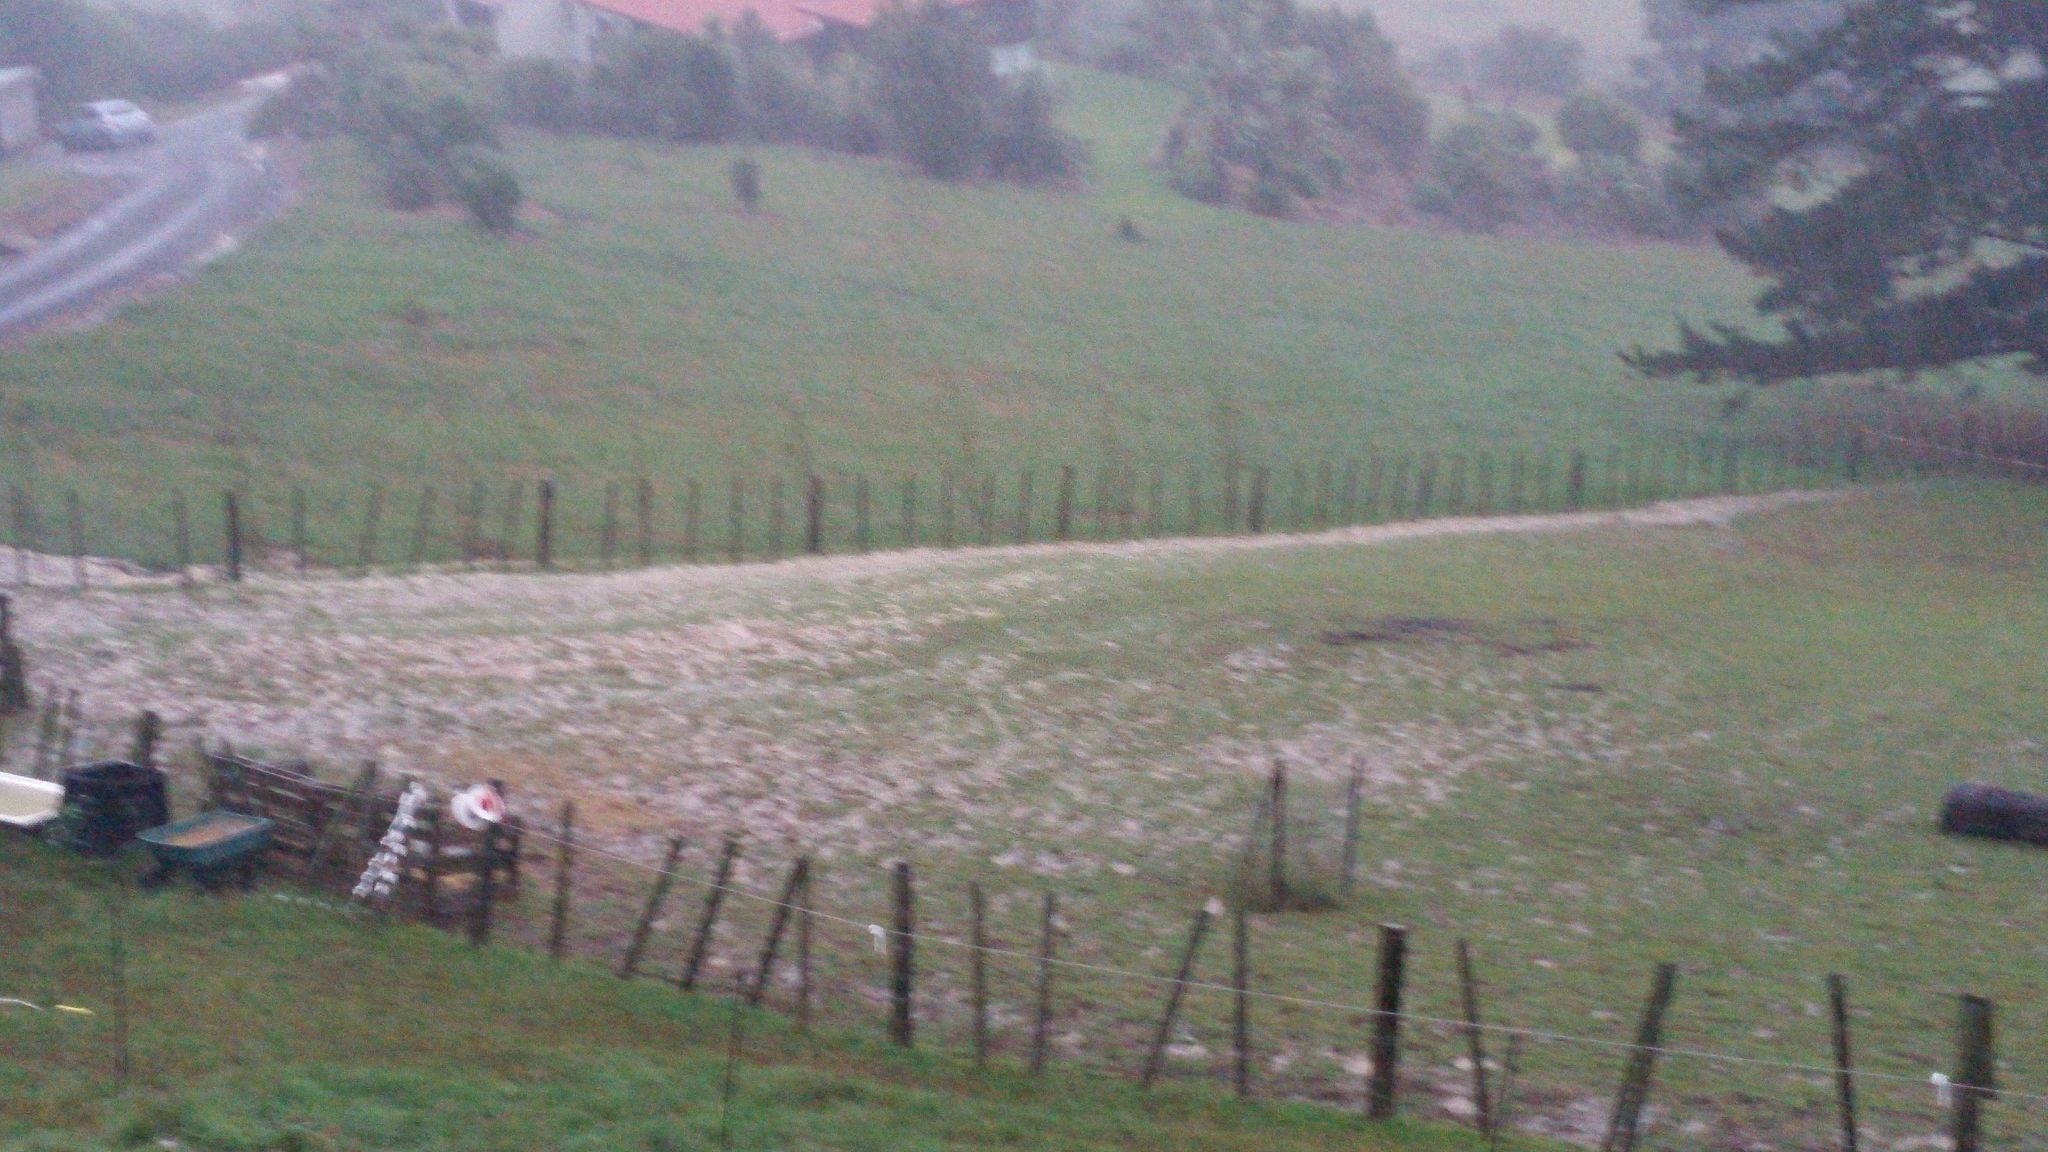 Water coming down driveway and up from the other paddocks